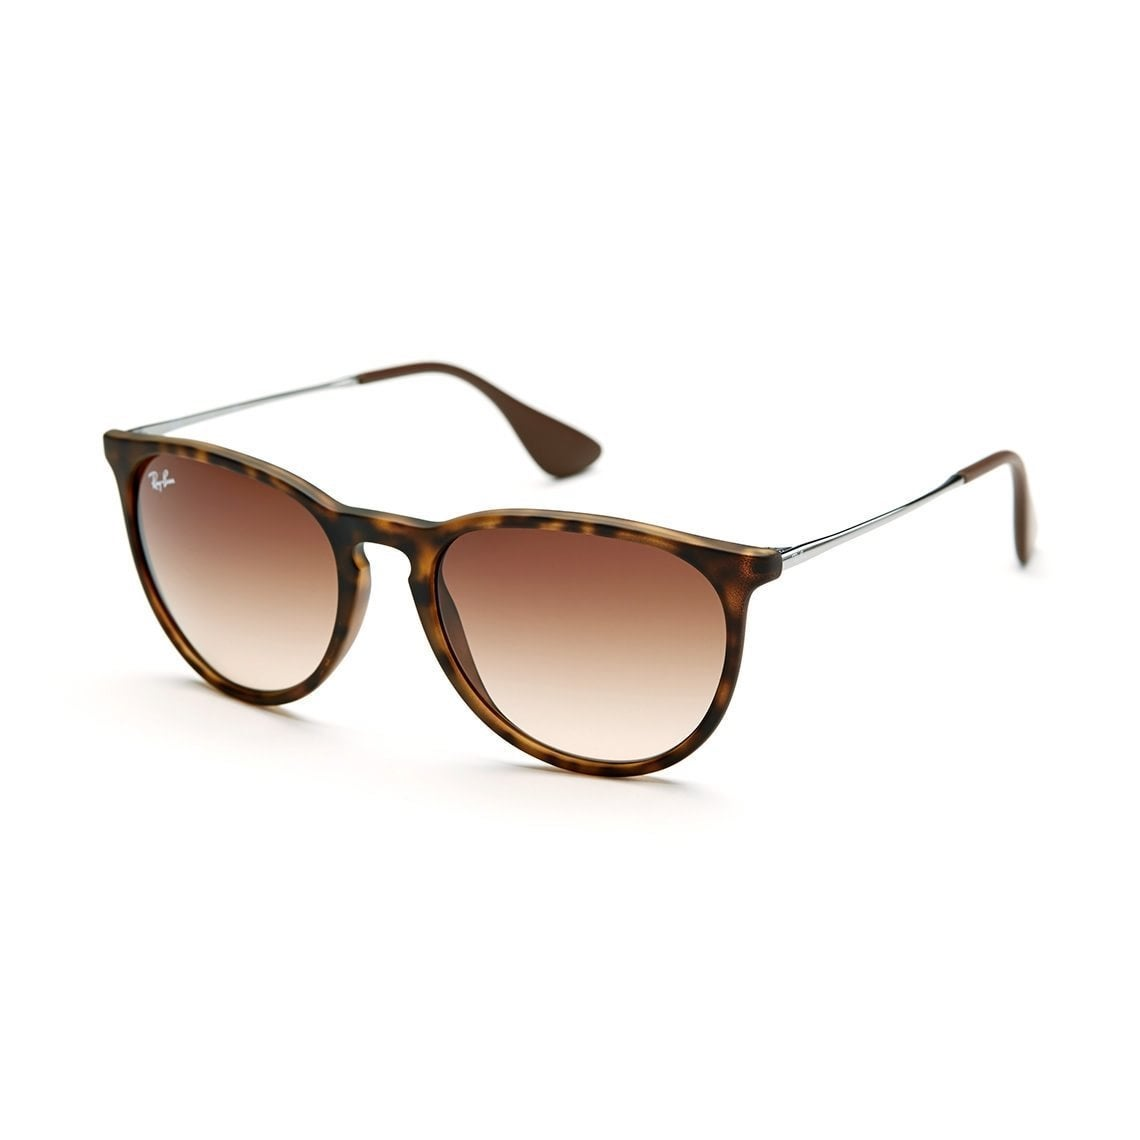 8a517f73e2 Ray-Ban Erika RB4171 865 13 Tortoise Gunmetal Frame Brown Gradient 54mm  Lens Sunglasses